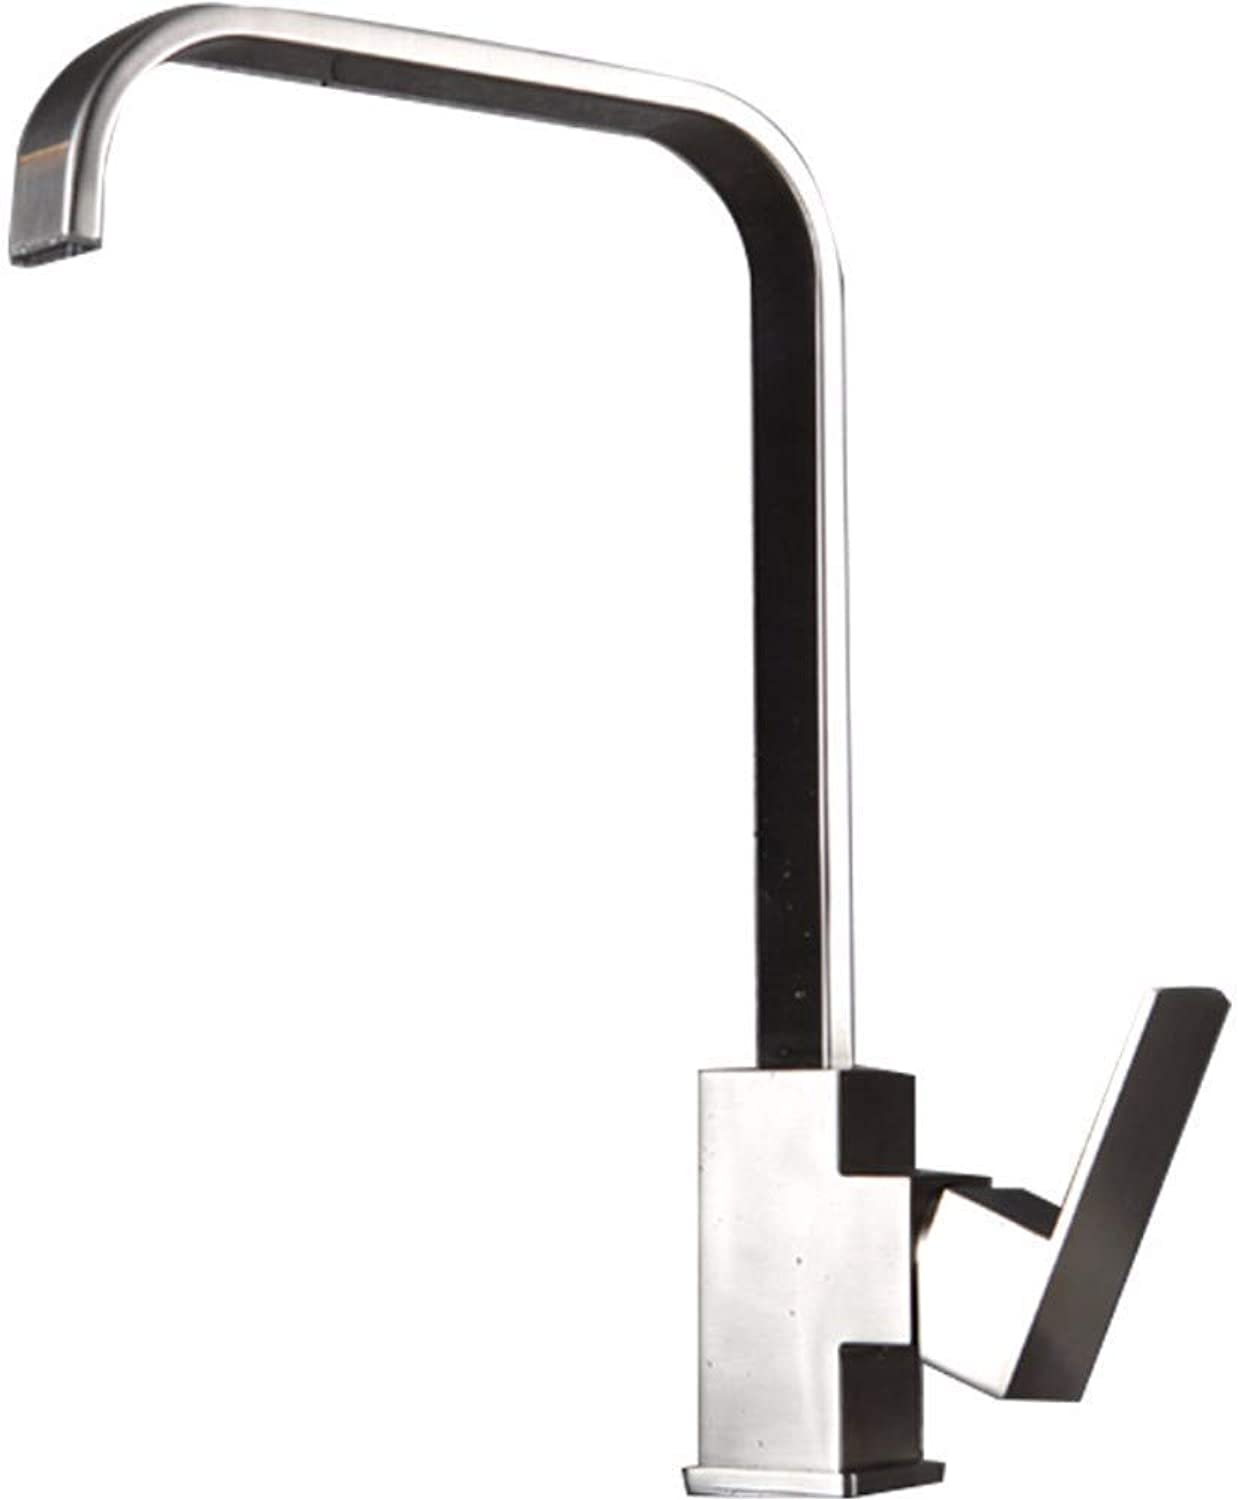 Basin Taps Swivel Spout Faucet Square Faucet Hot and Cold Water Kitchen Console Sink Stainless Steel Faucet